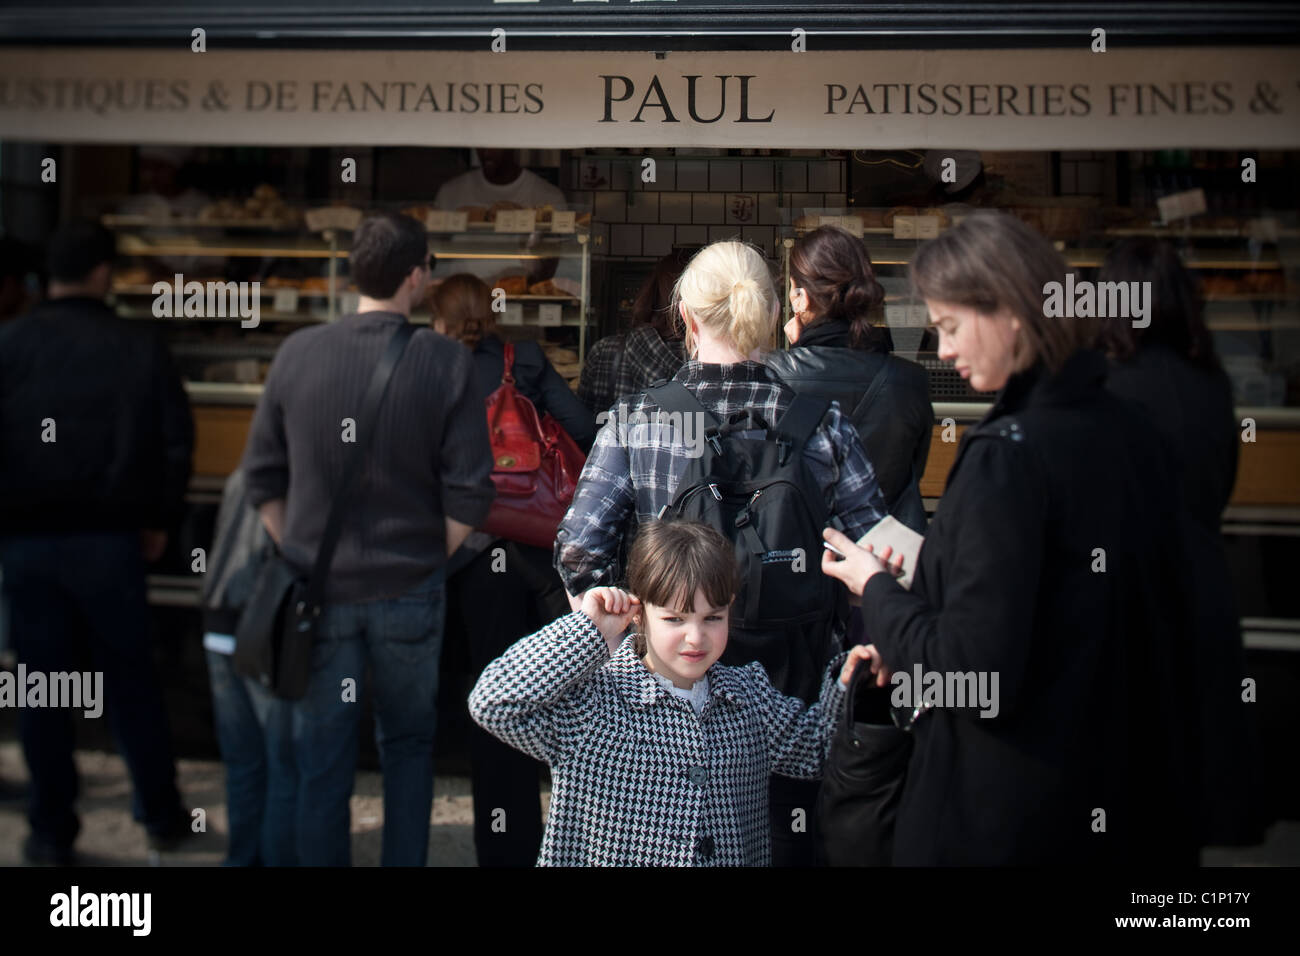 Mother and Daughter wait in line at an outdoor food vendor in Paris France. Paul Patisserie - Stock Image